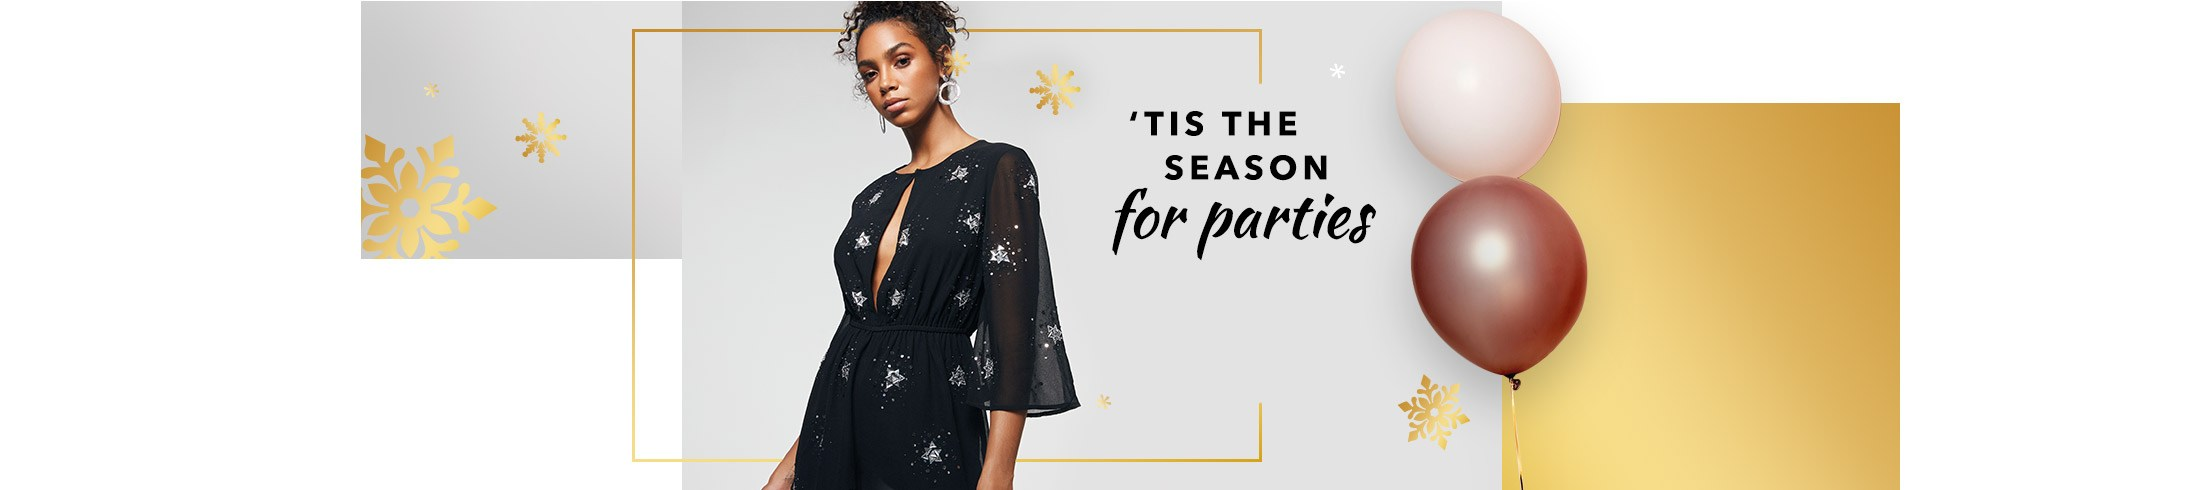 It's party time! Discover everything you need to look your best